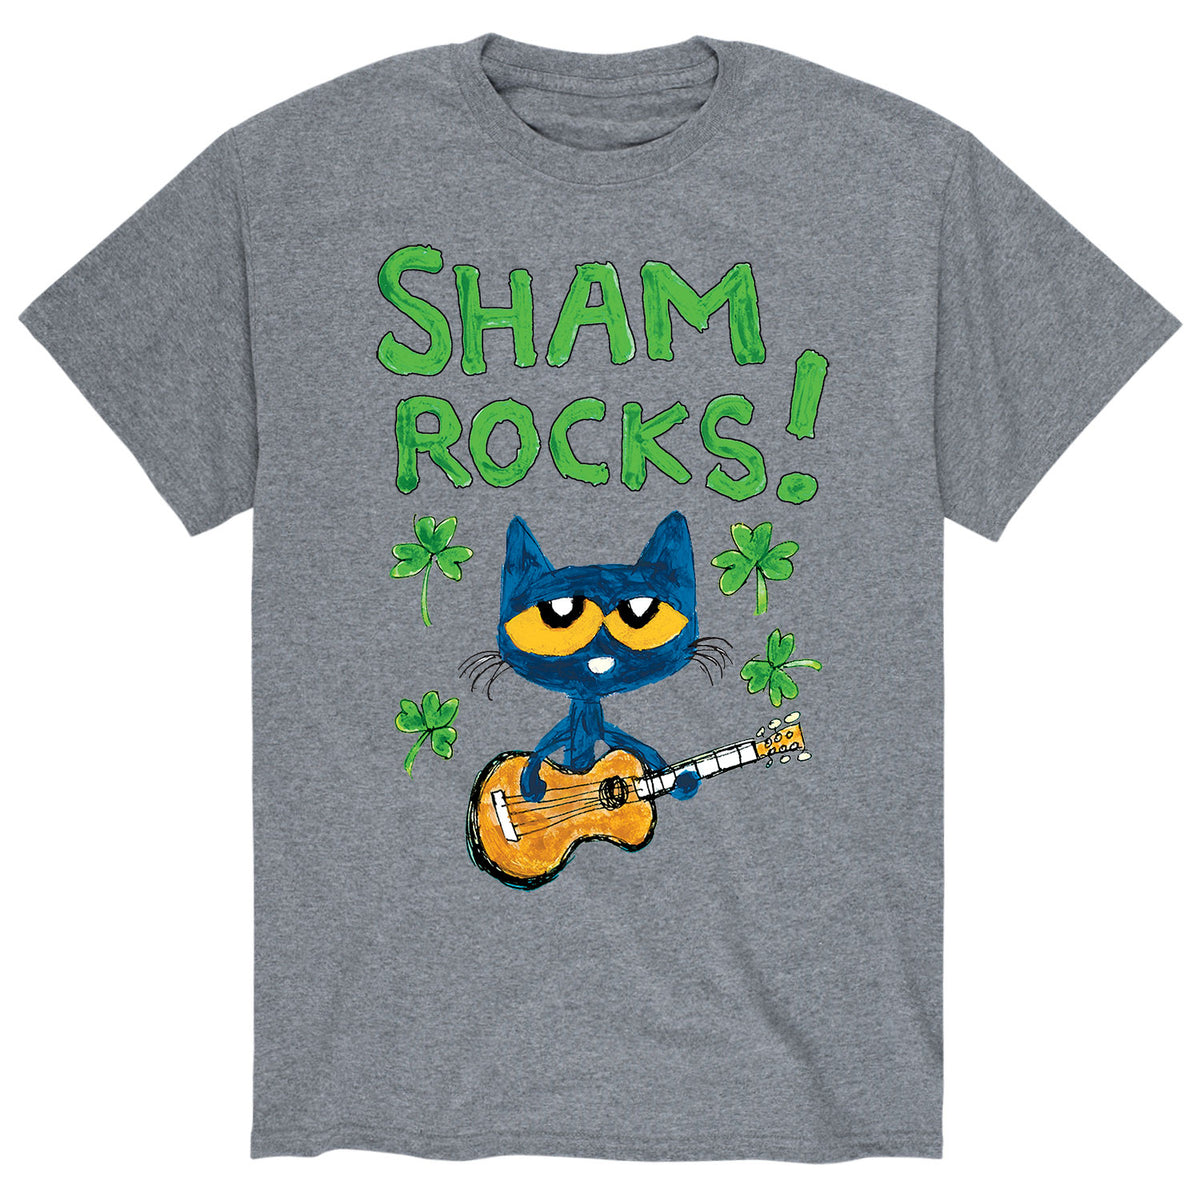 Sham Rocks - Men's Short Sleeve T-Shirt